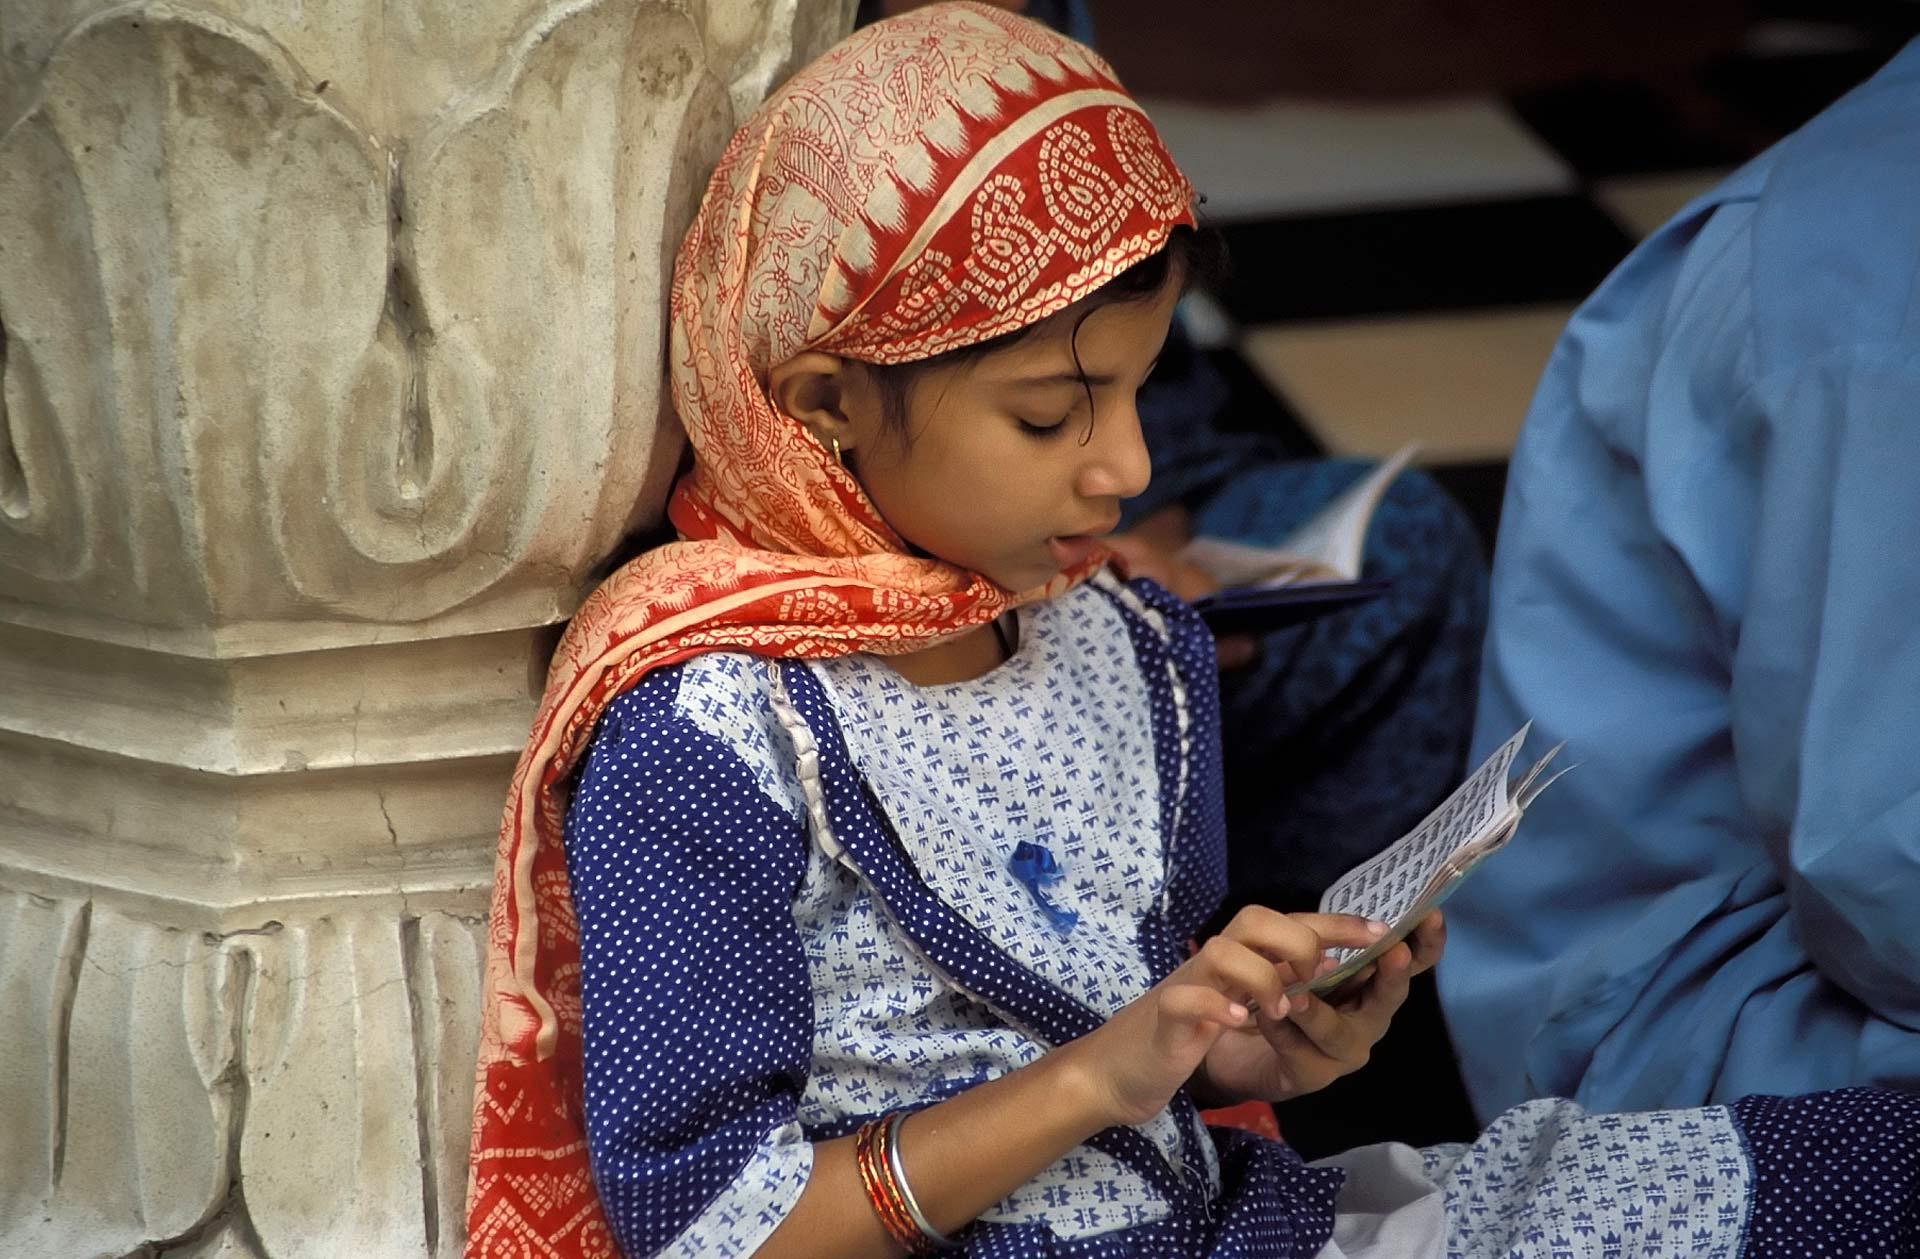 Sikh girl reading holy scriptures at the Gurdwara, Punjab, India